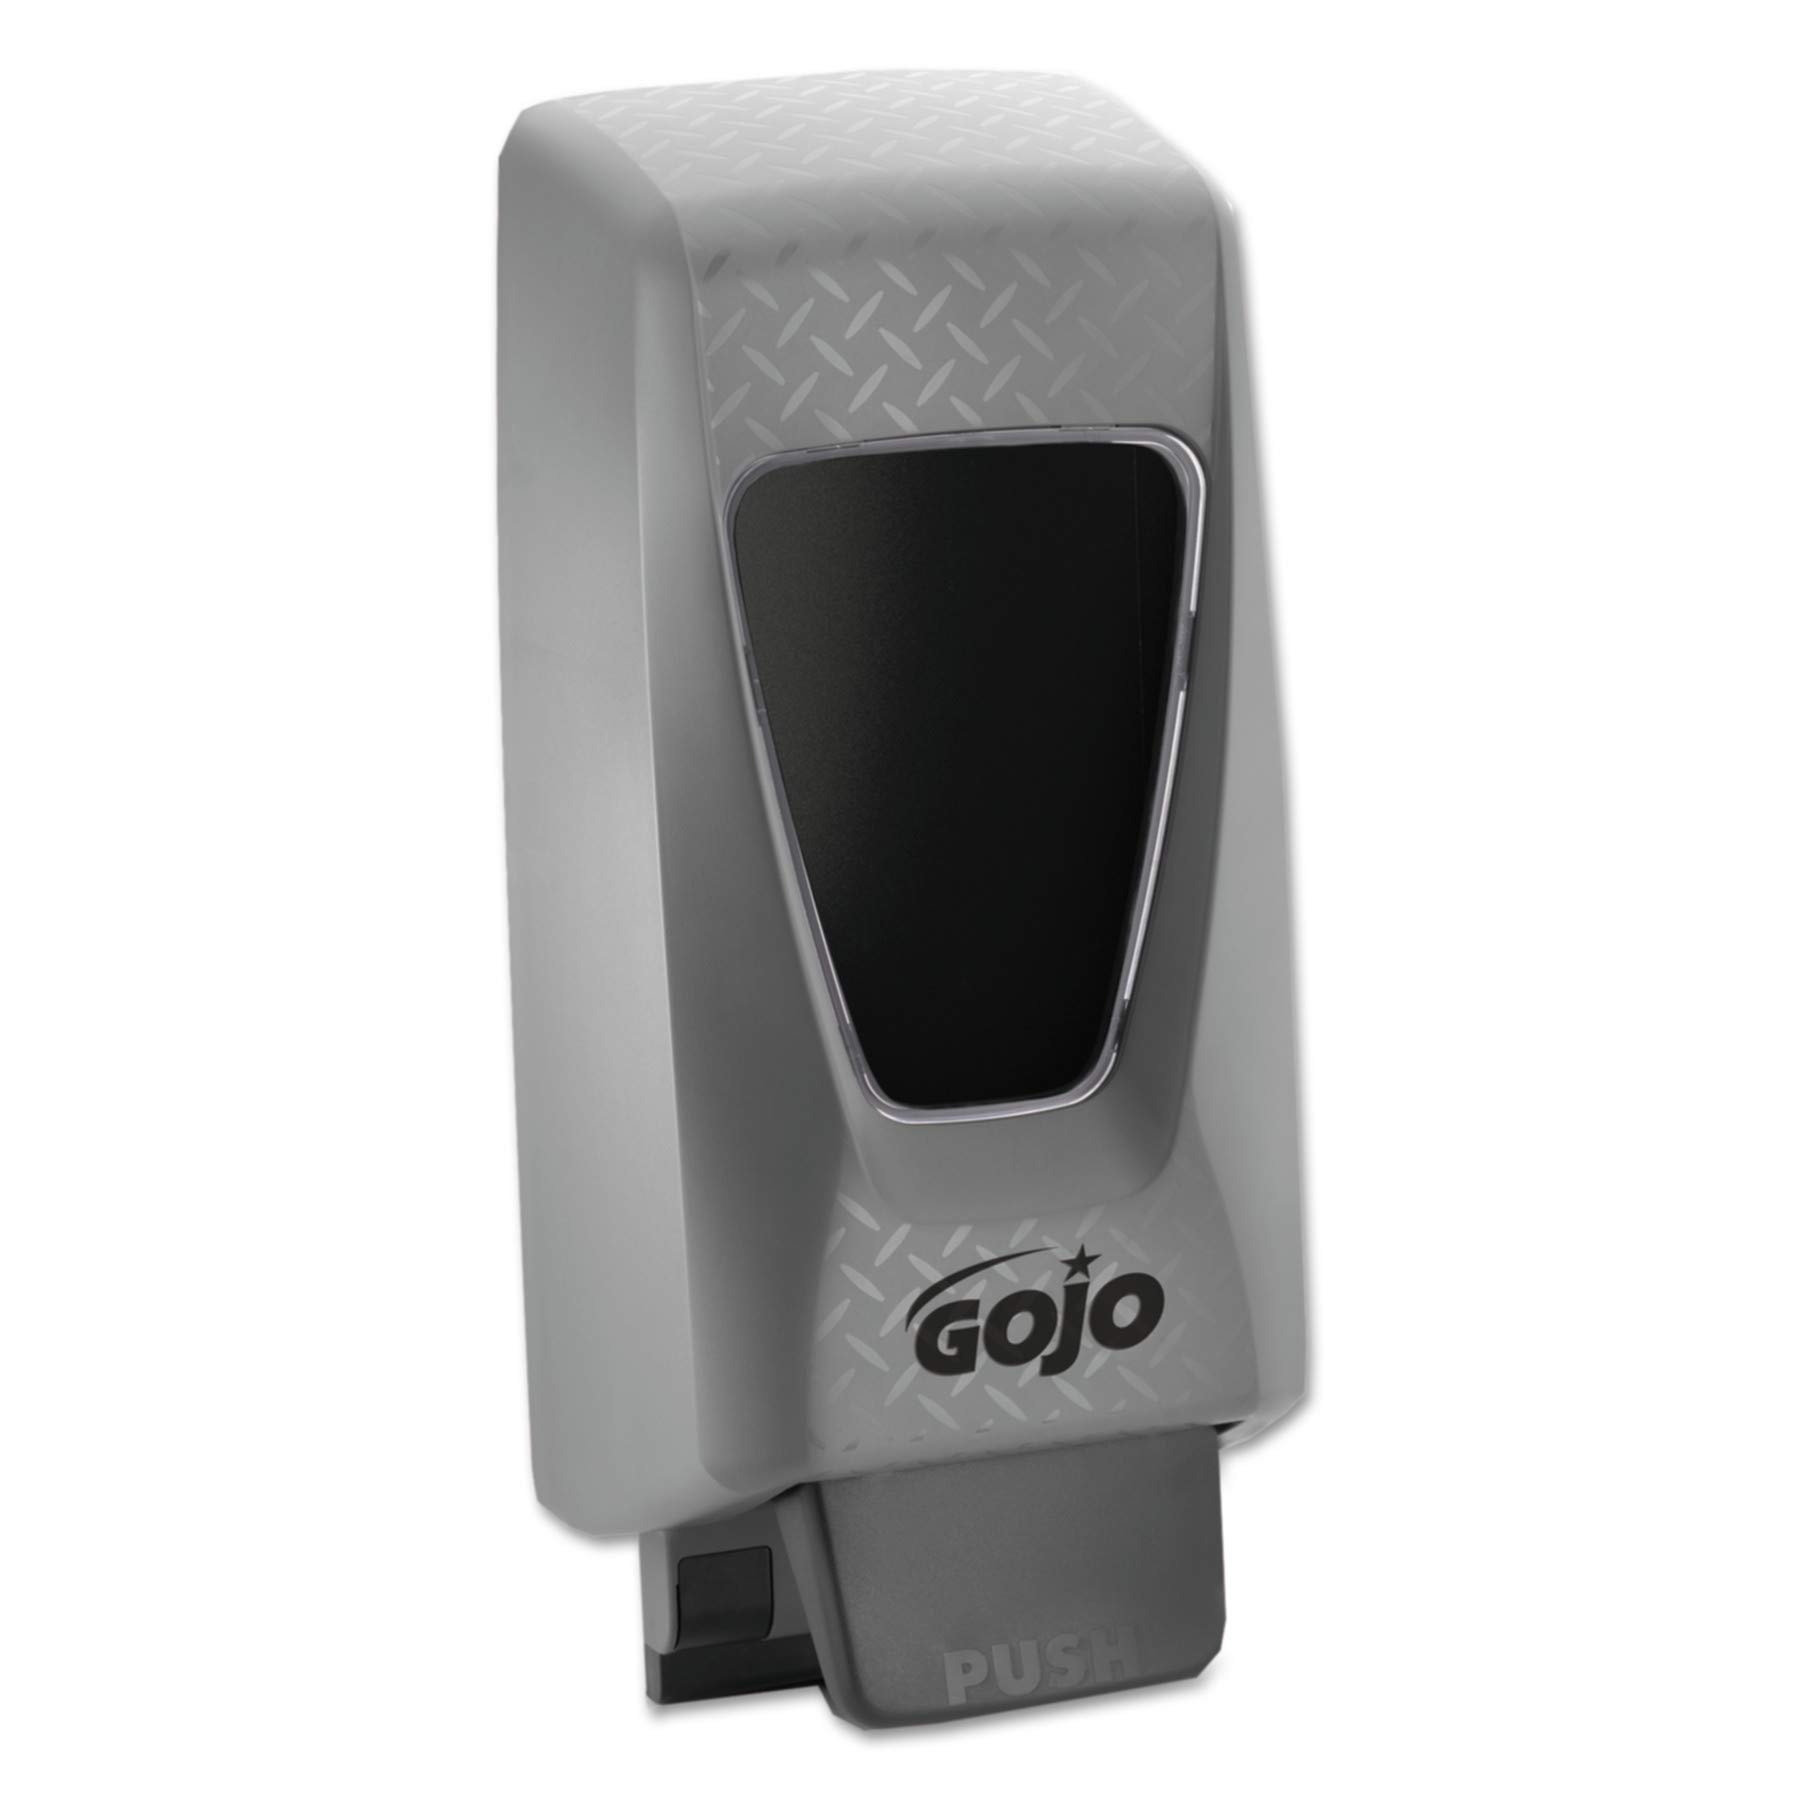 GOJO PRO TDX 2000 Push-Style Hand Soap Dispenser, Grey, Dispenser for GOJO 2000 mL Heavy Duty Soap Refills - 7200-01